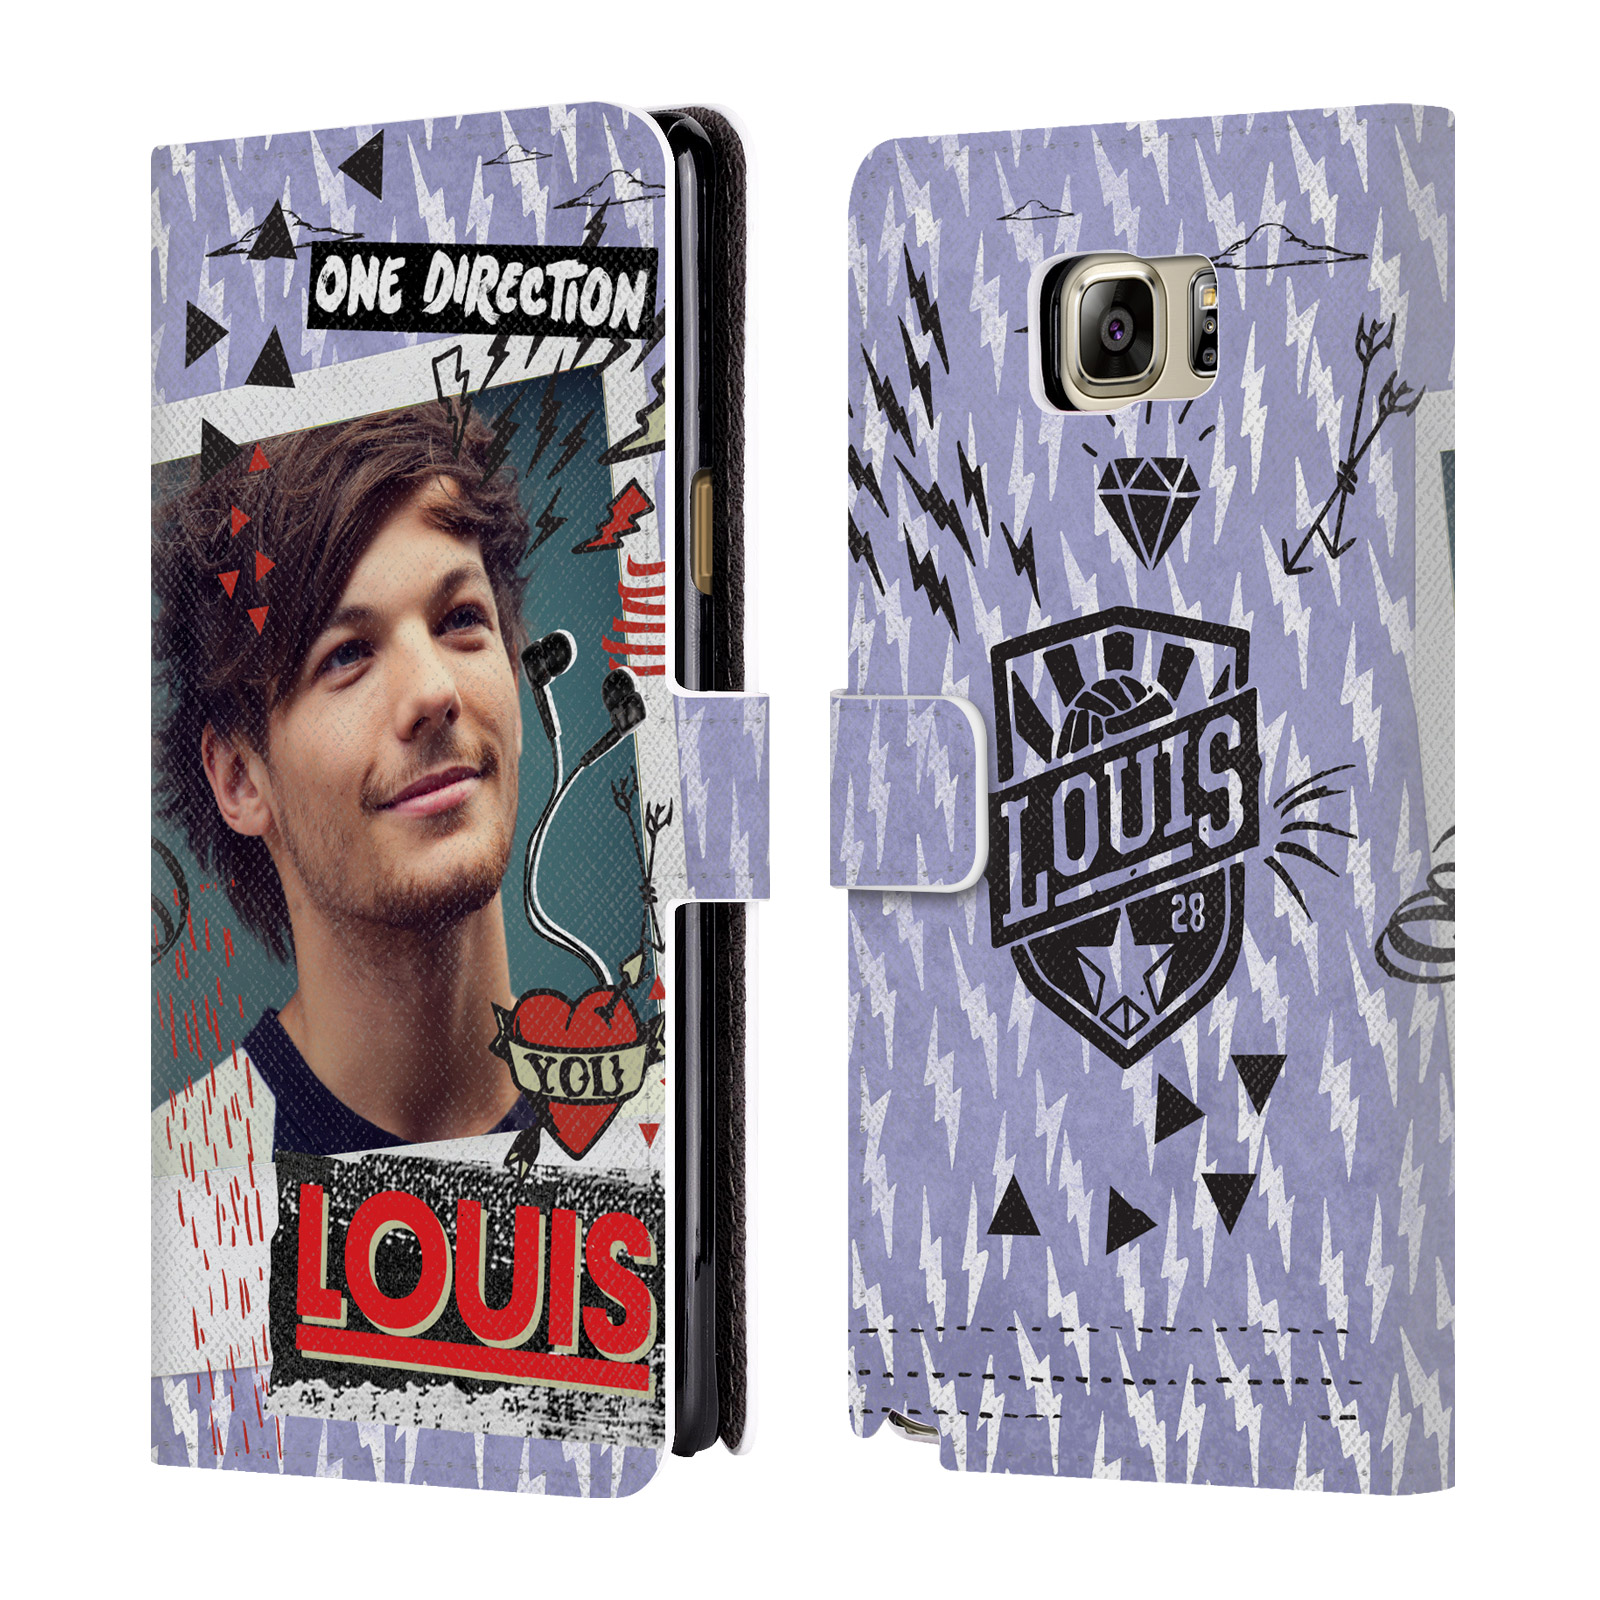 OFFICIAL ONE DIRECTION MIDNIGHT MEMORIES SHOTS LOUIS LEATHER BOOK WALLET CASE COVER FOR SAMSUNG PHONES 1